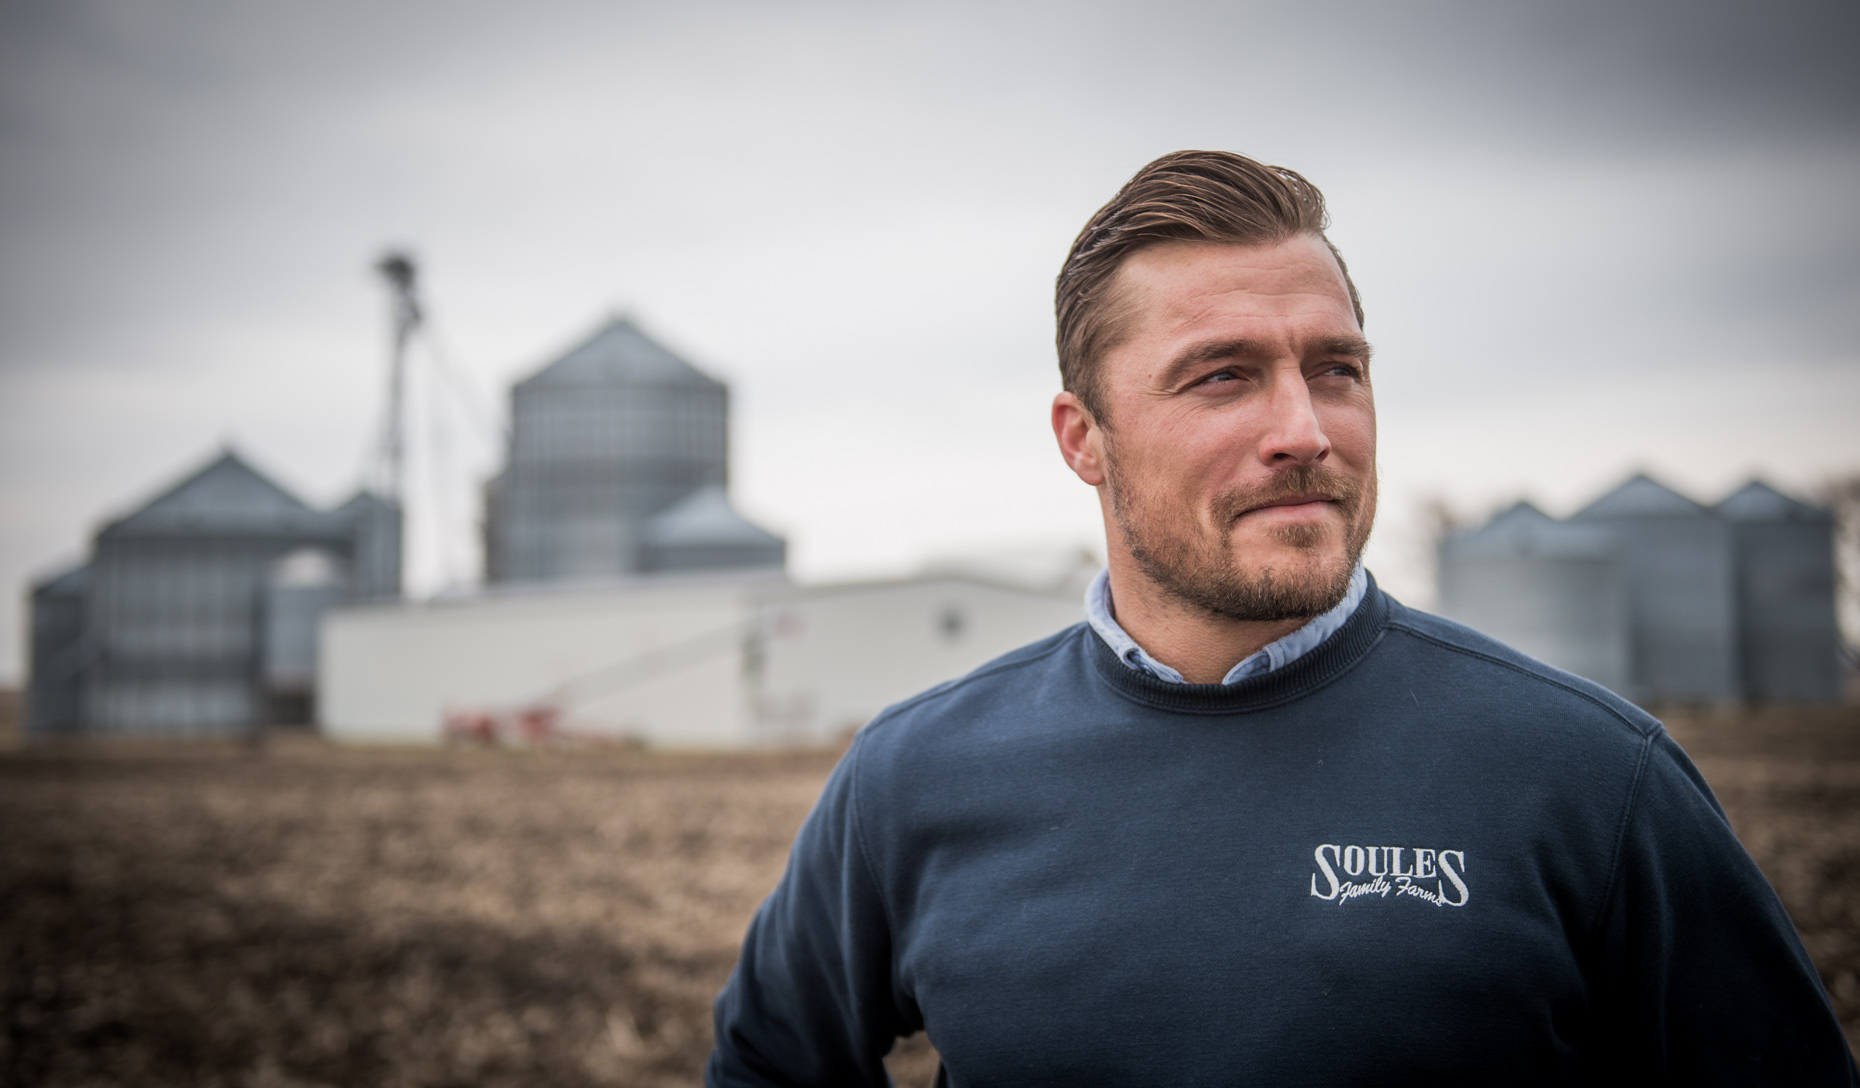 Chris Soules Portrait